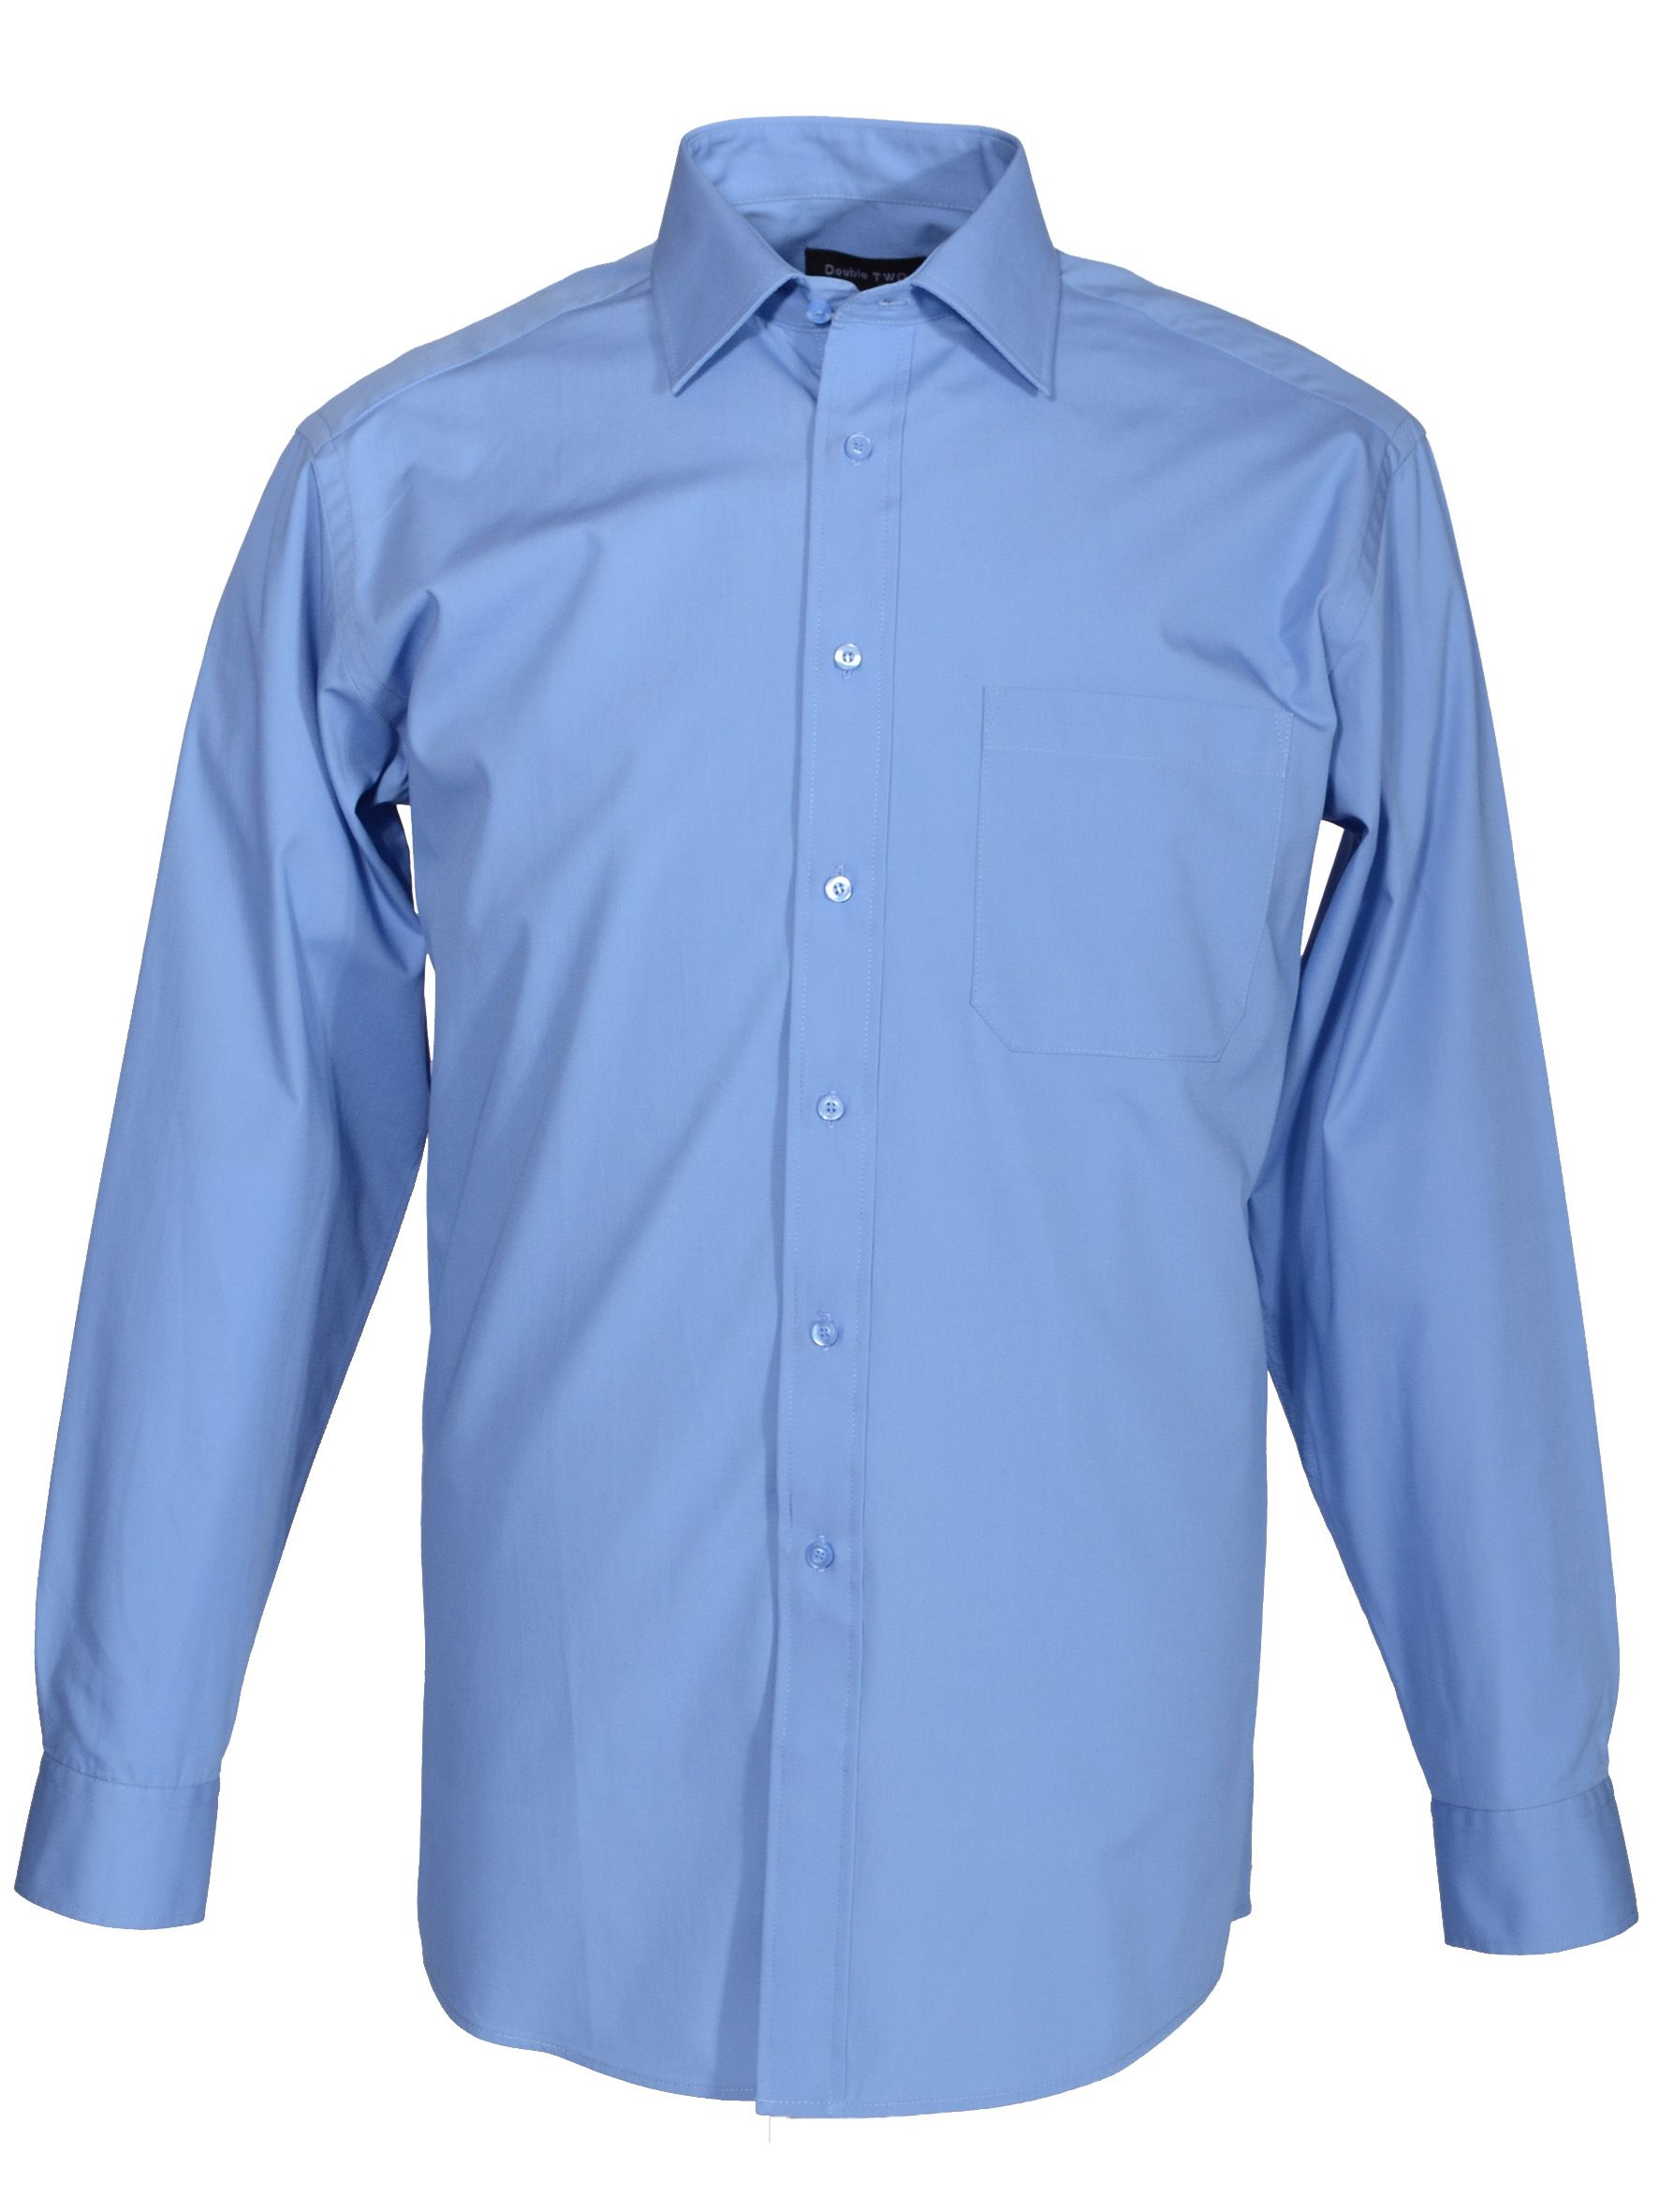 Long Sleeve 100% Cotton Poplin